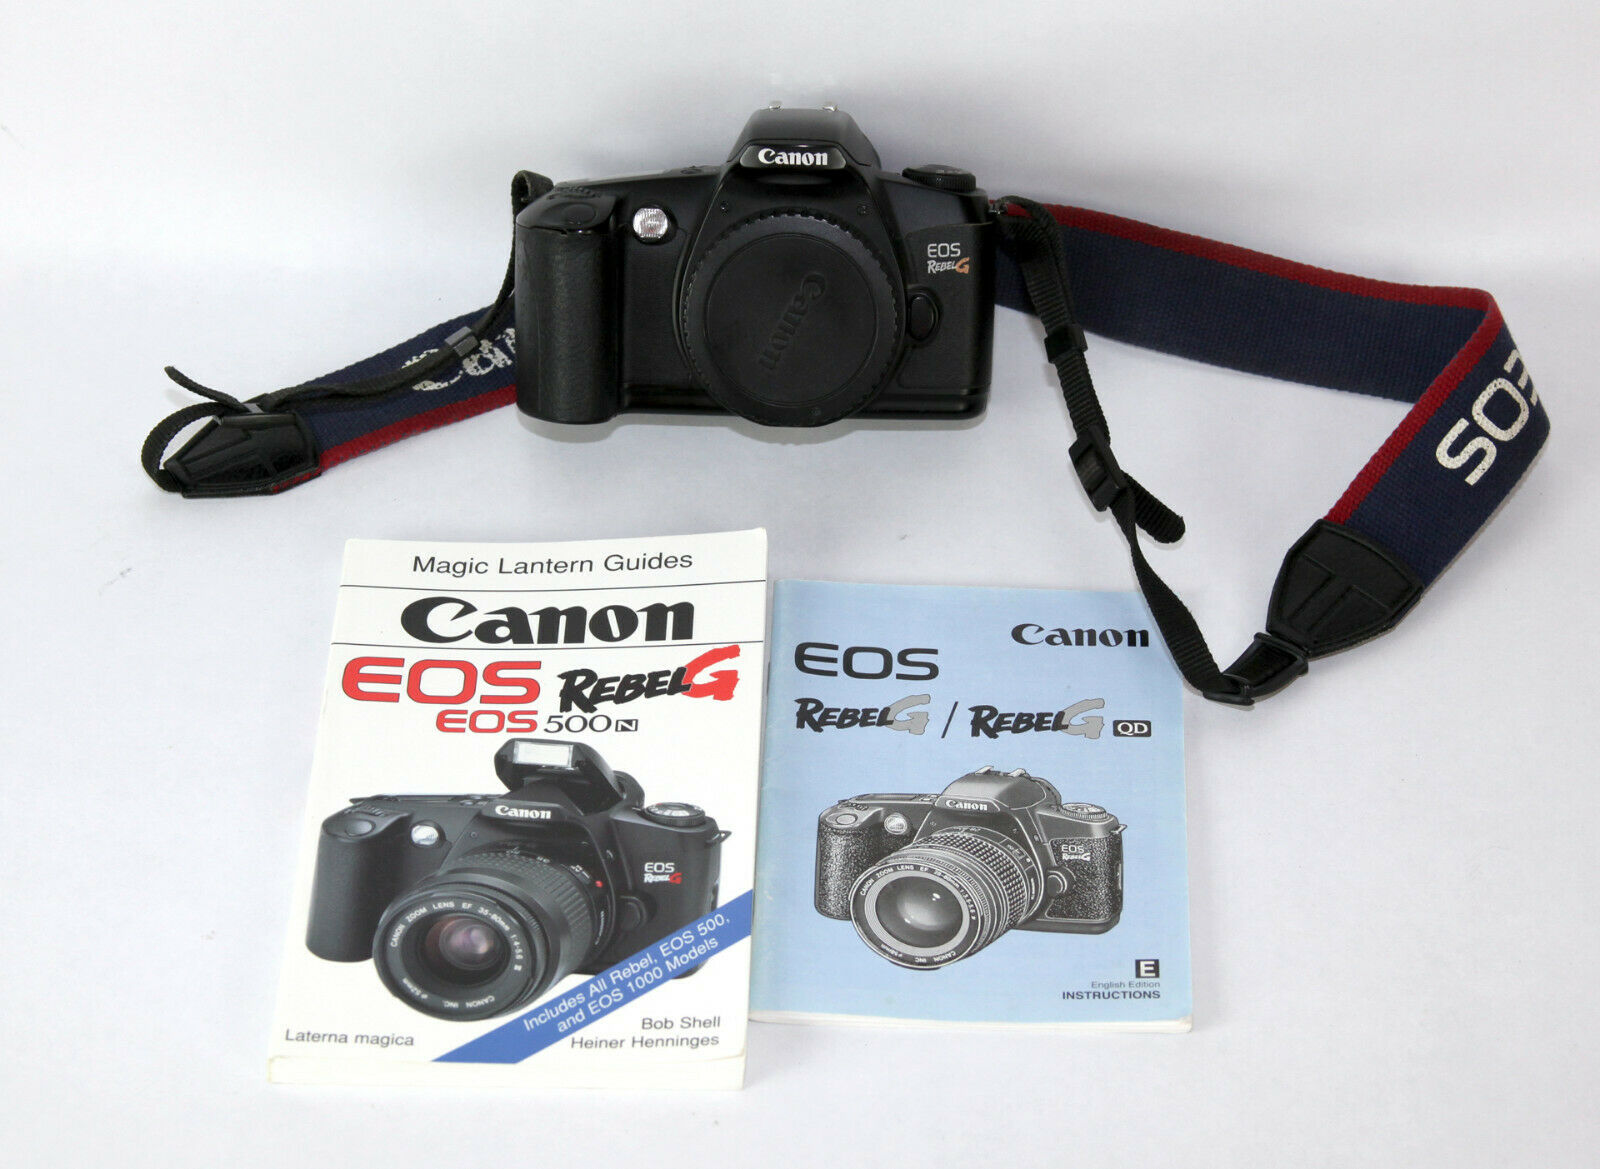 Canon Rebel G 35mm Film AF Camera Body Only, EOS EF Mount W/Strap And Books  - $9.95